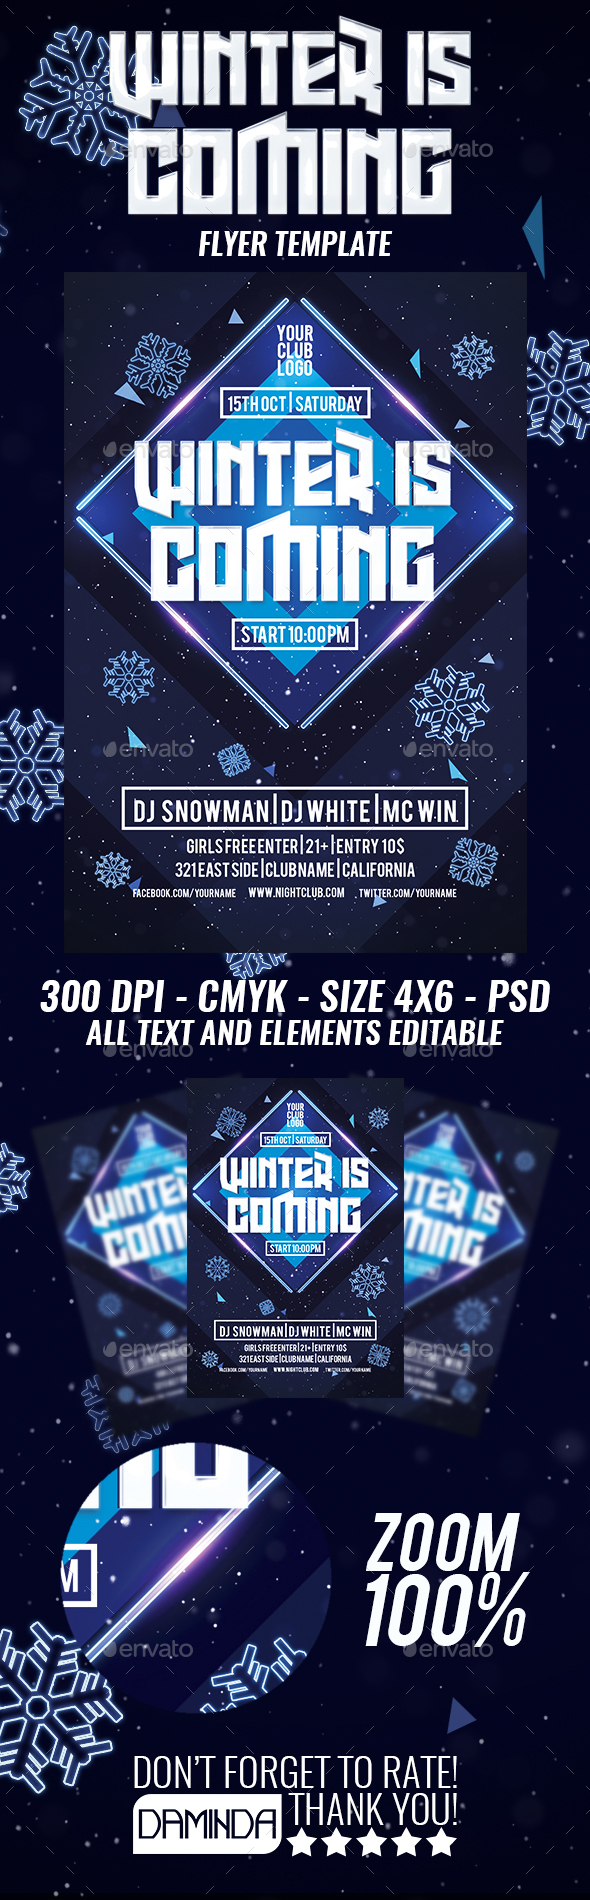 Winter Is Coming Flyer Template by Daminda-Design | GraphicRiver